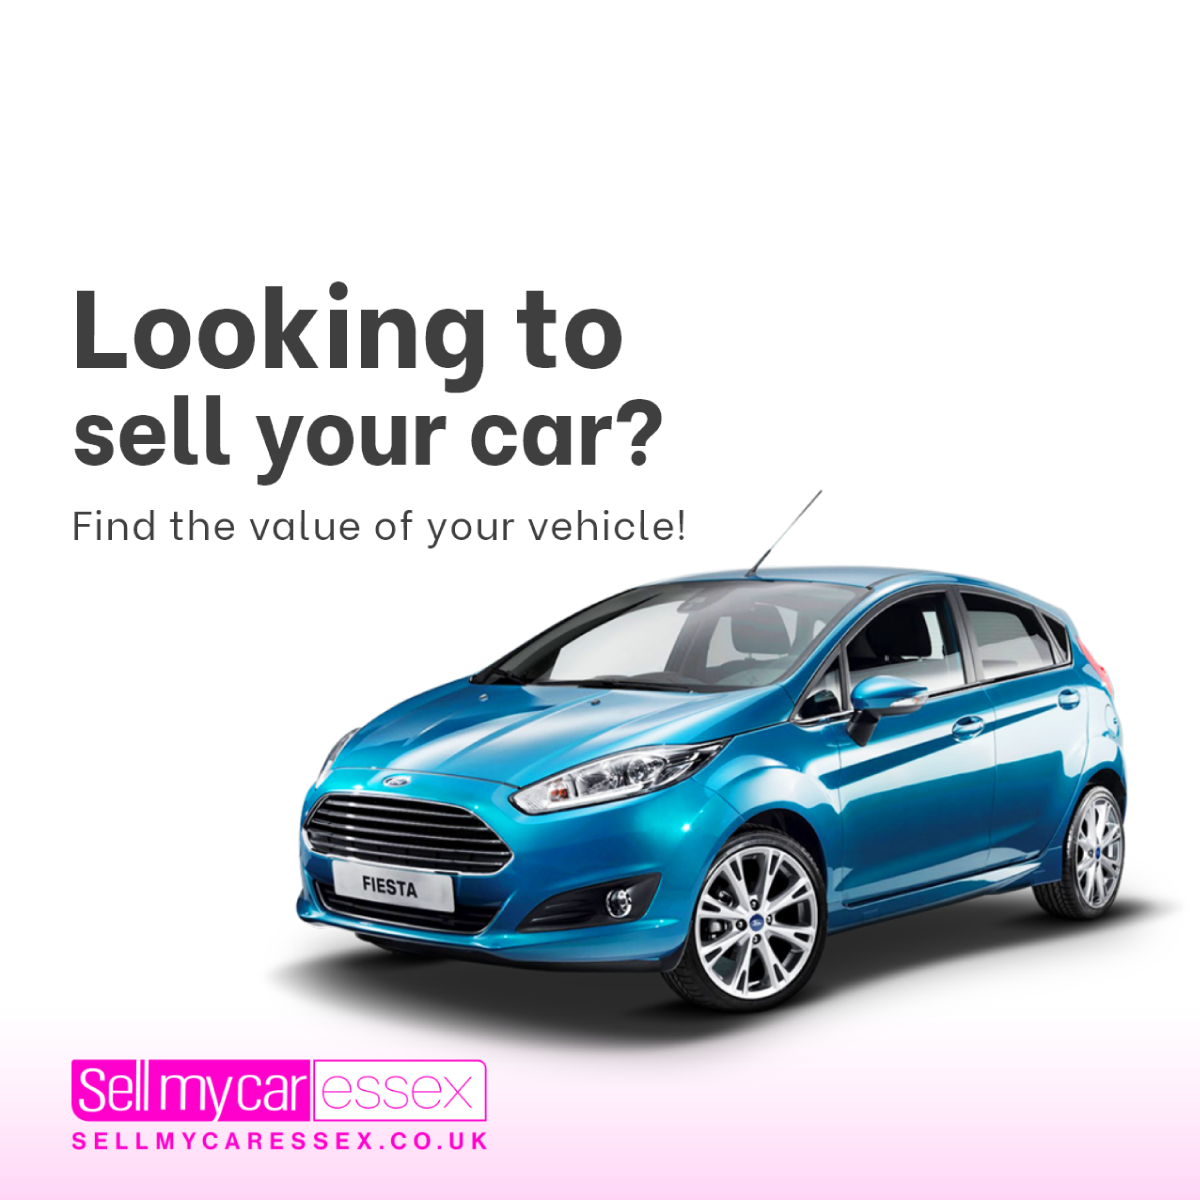 Looking To Sell Your Car - Sell My Car Essex